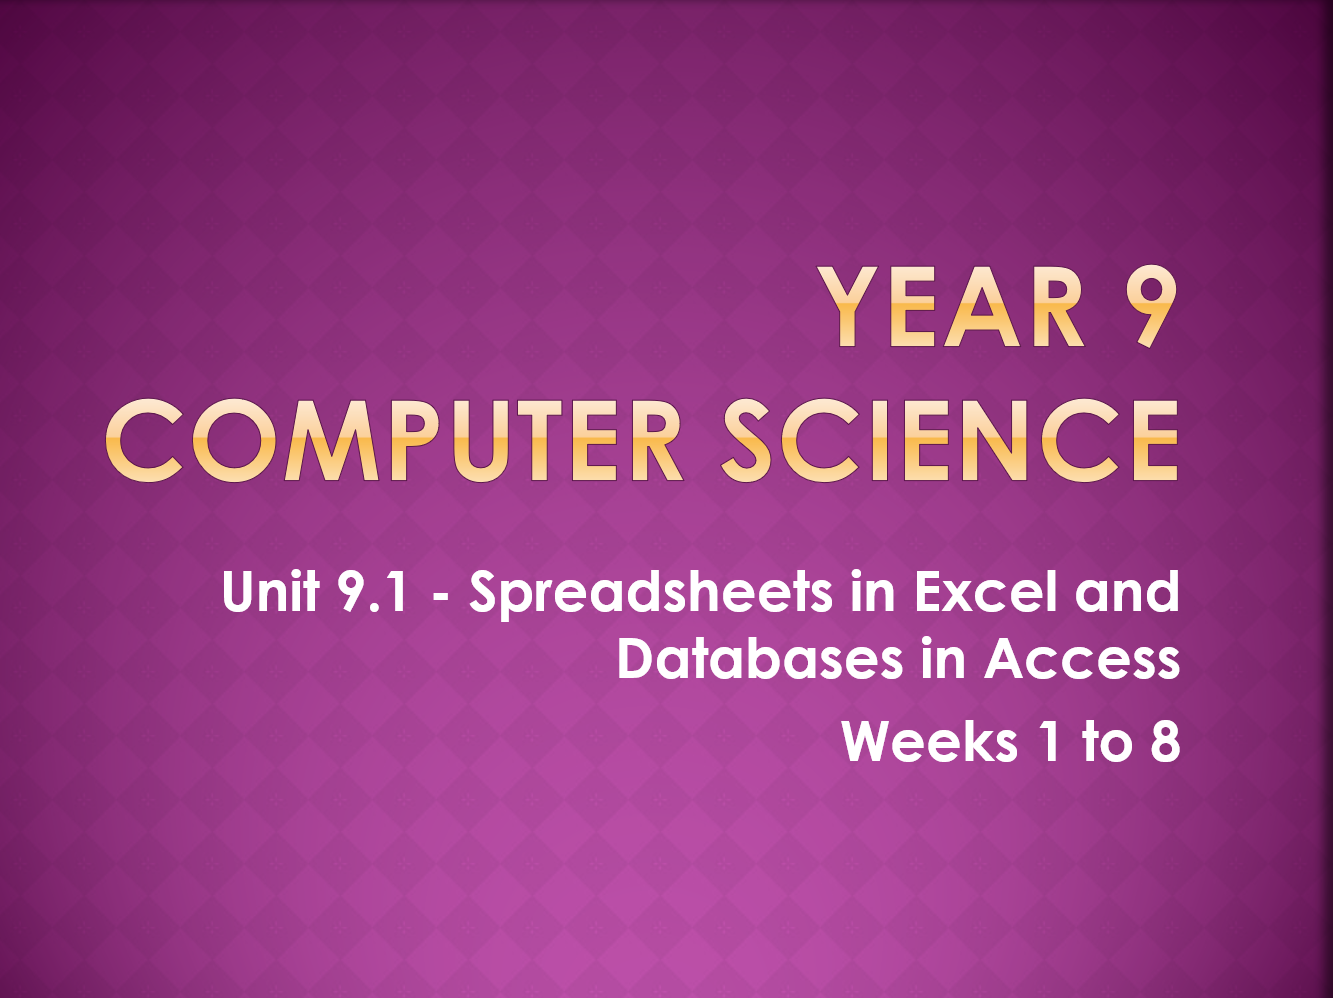 Complete Computer Science KS3 SOW: Introduction to Excel